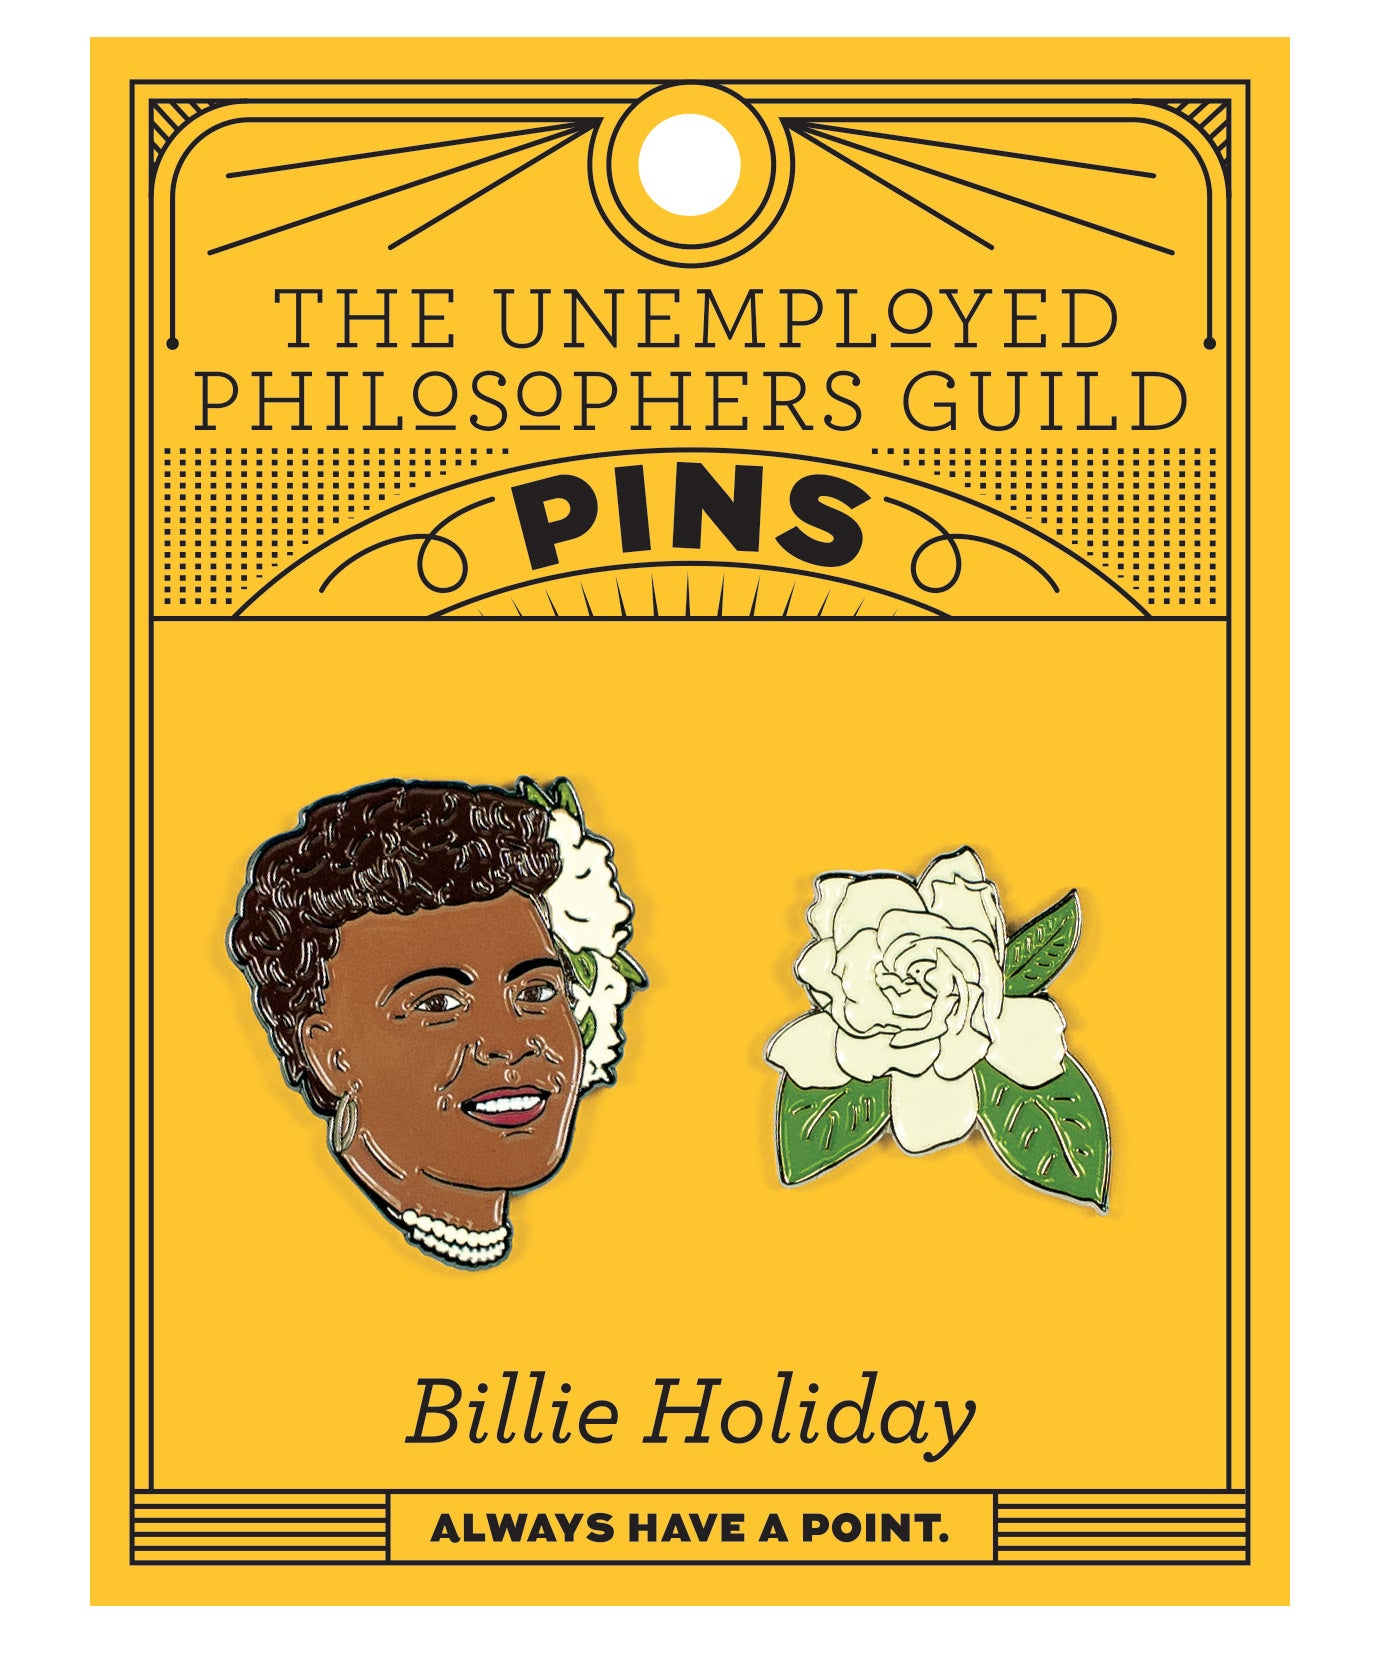 Billie Holiday & Gardenia Pins